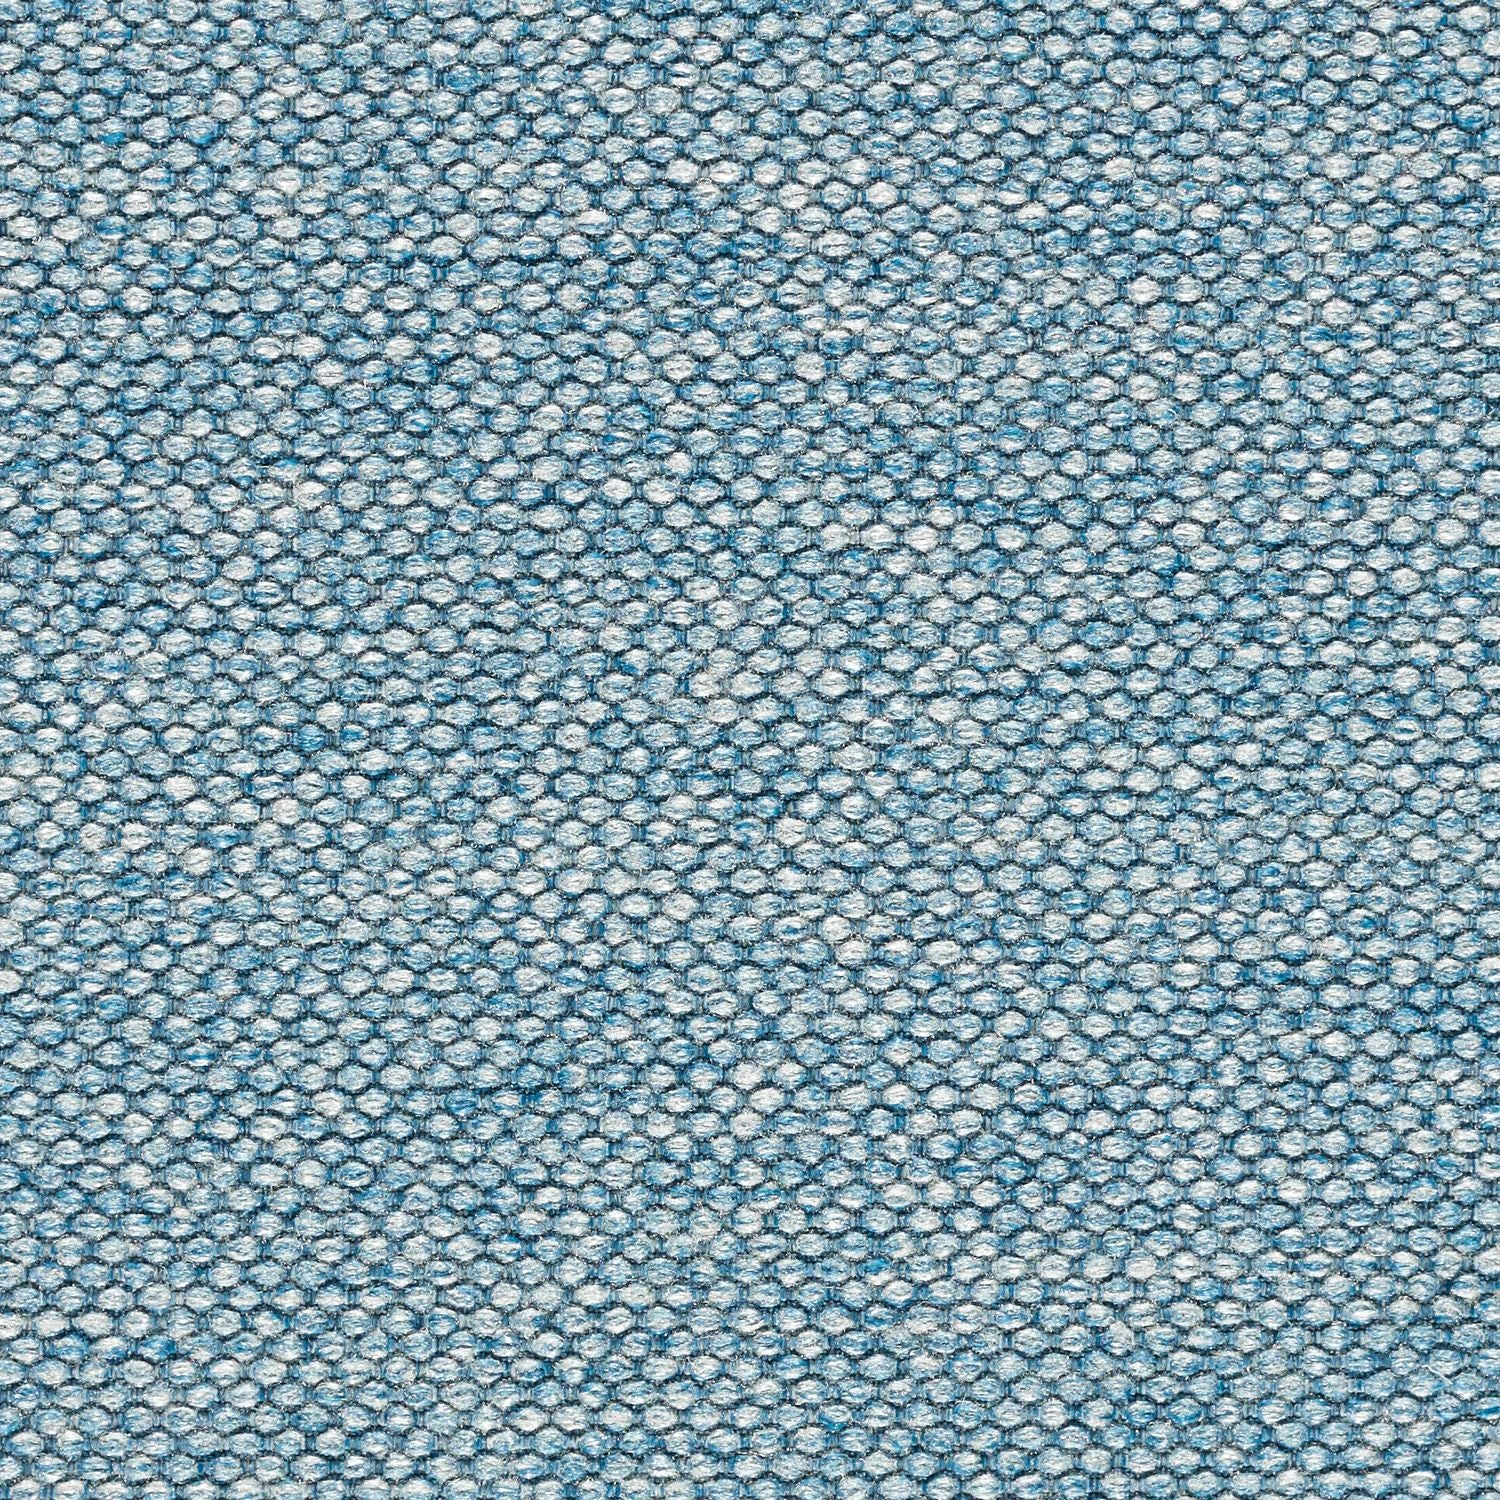 Clear Tweed|4058-19-D328|Clear Tweed 4058-19-D328